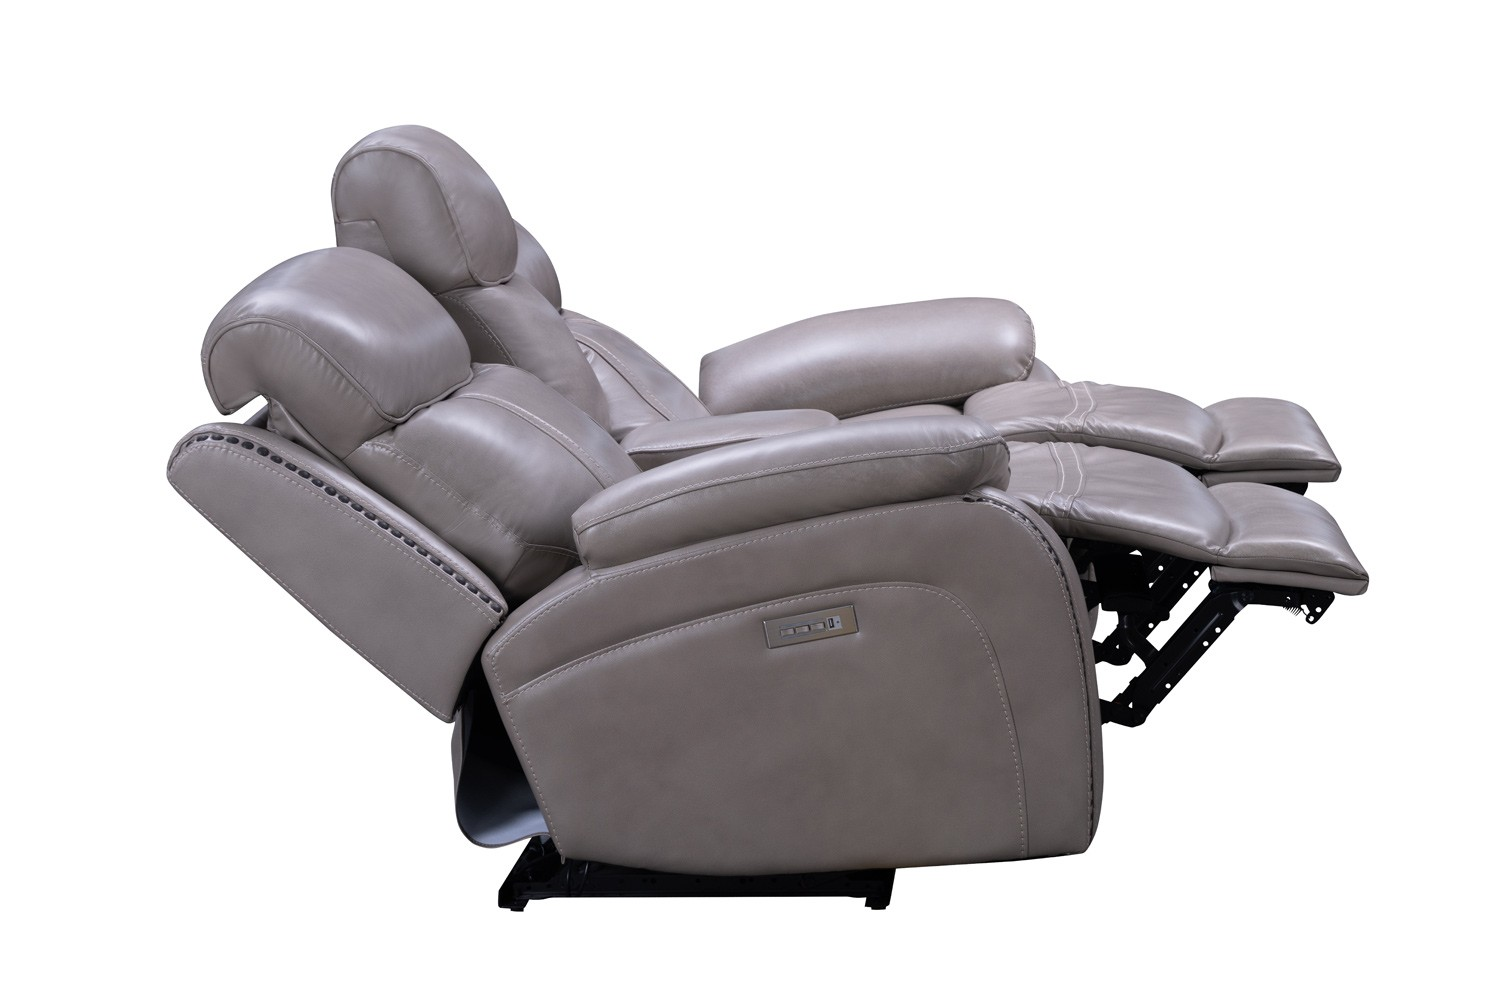 Barcalounger Sandover Power Reclining Console Loveseat with Power Head Rests and Lumbar - Sergi Gray Beige/Leather Match